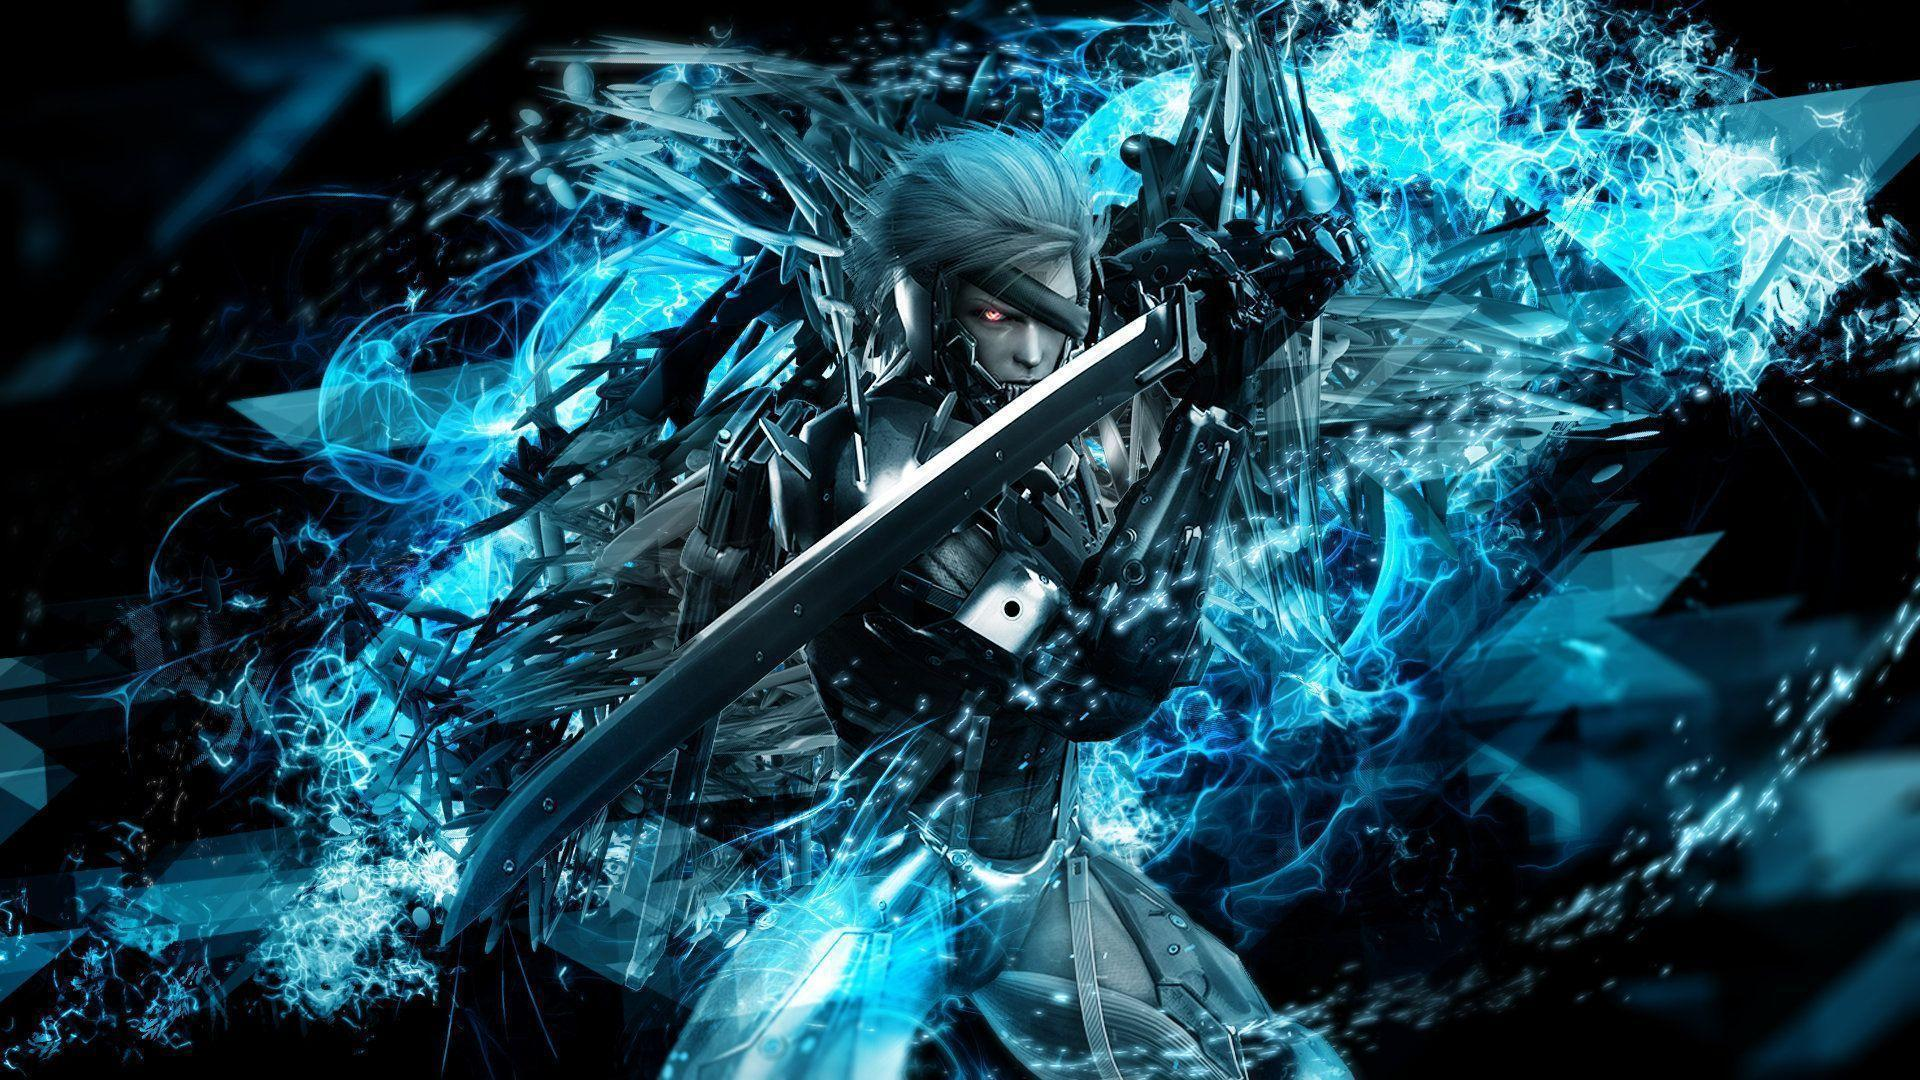 Metal gear rising wallpapers wallpaper cave the 10 most amazing metal gear rising hd wallpapers voltagebd Choice Image